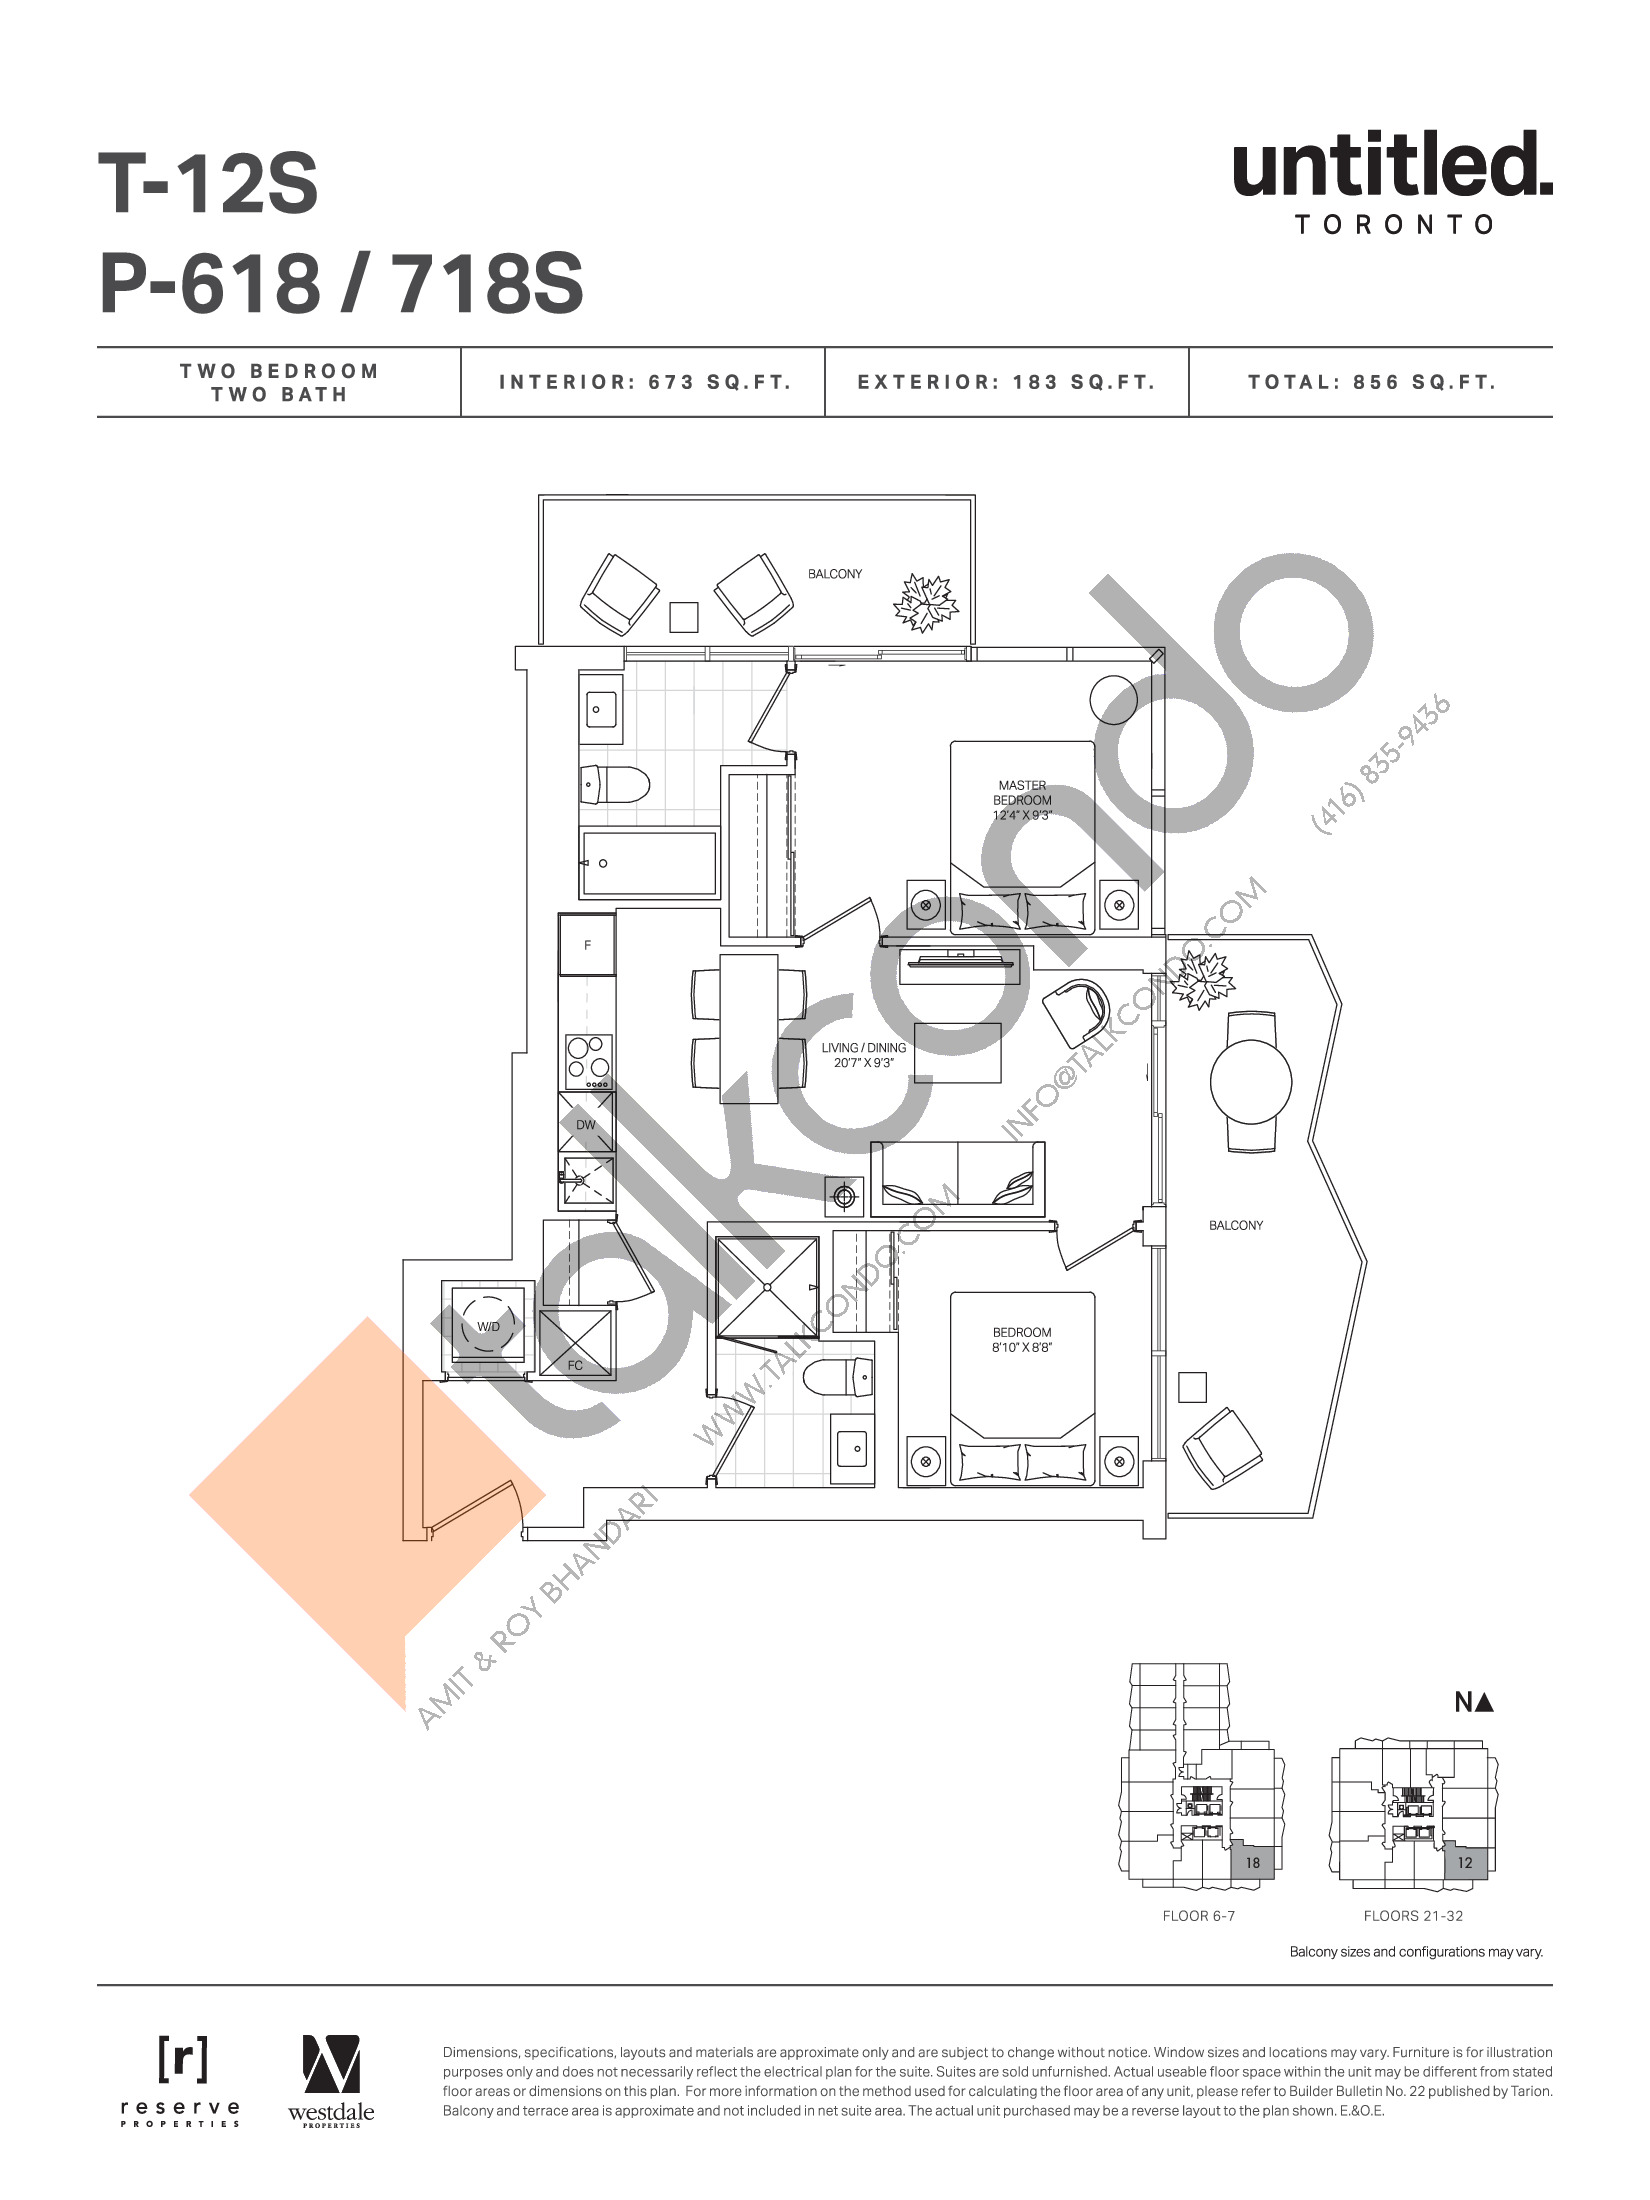 T-12S / P-618 / 718S (Floor 6-7, 21-32) Floor Plan at Untitled Toronto Condos - 673 sq.ft